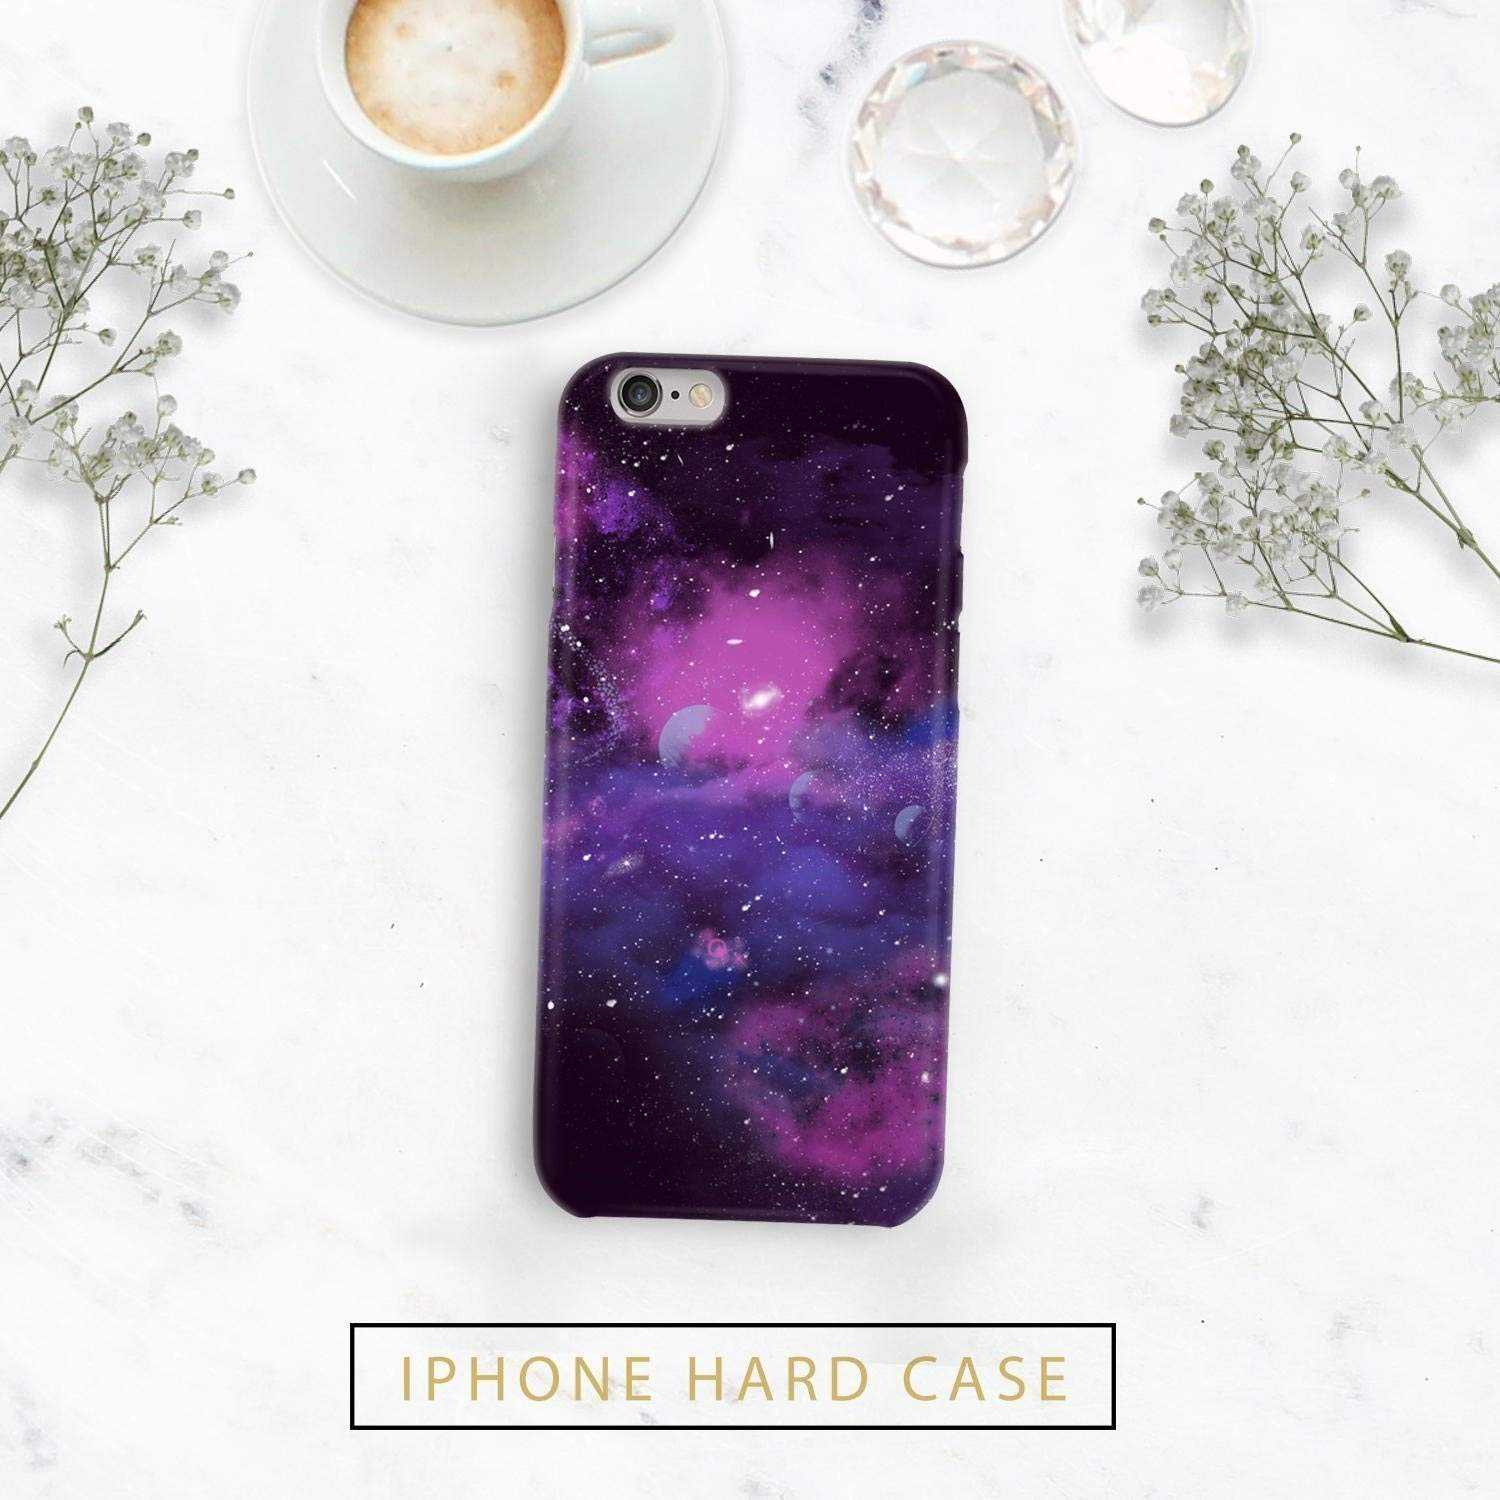 Galaxy Purple nabula iphone case